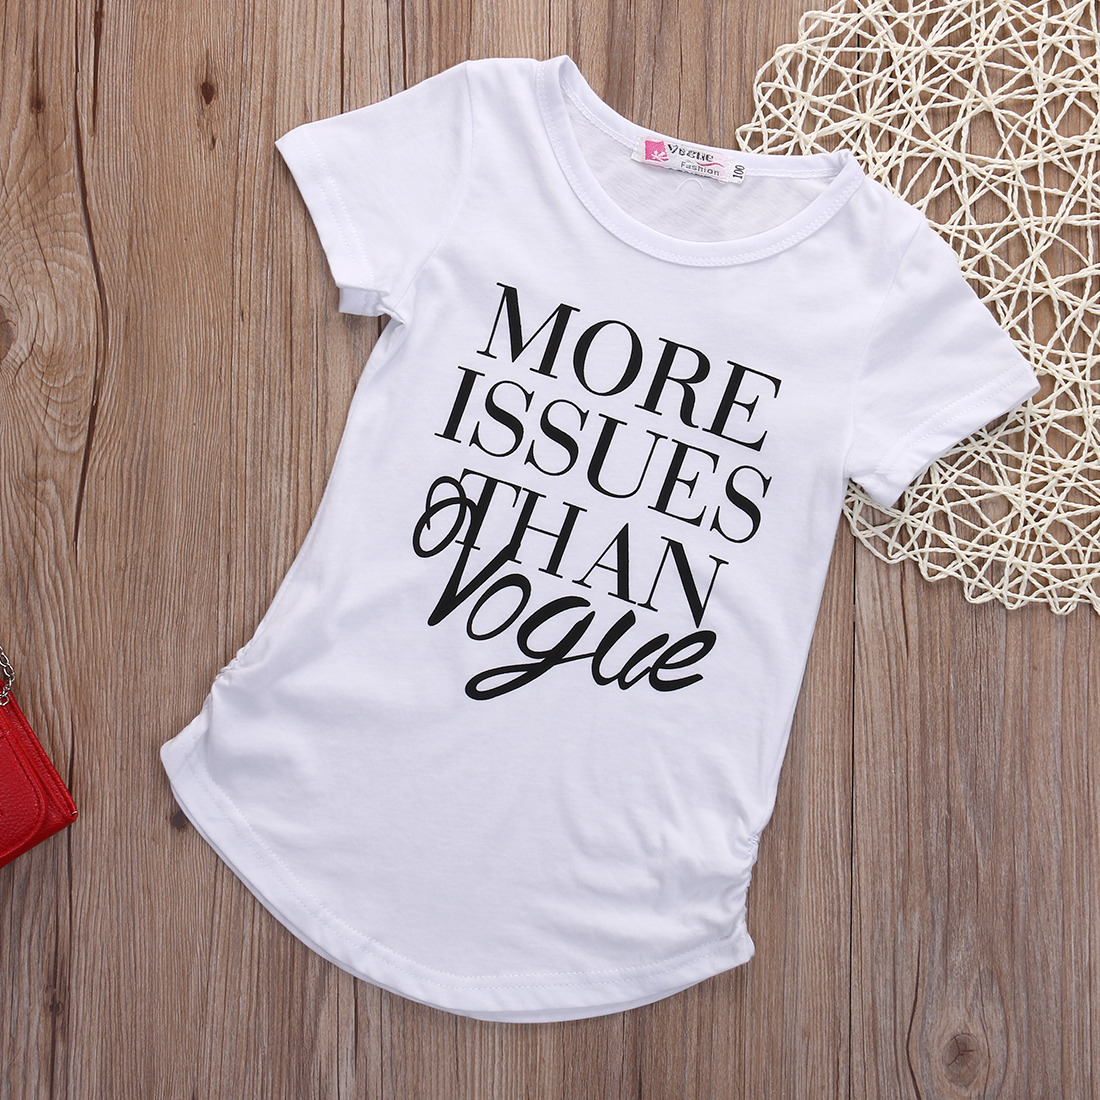 43eddd7b0 Details about 2016 New Kids Baby Girls Summer Fashion Cotton Short sleeve T- shirt Tops Clothes